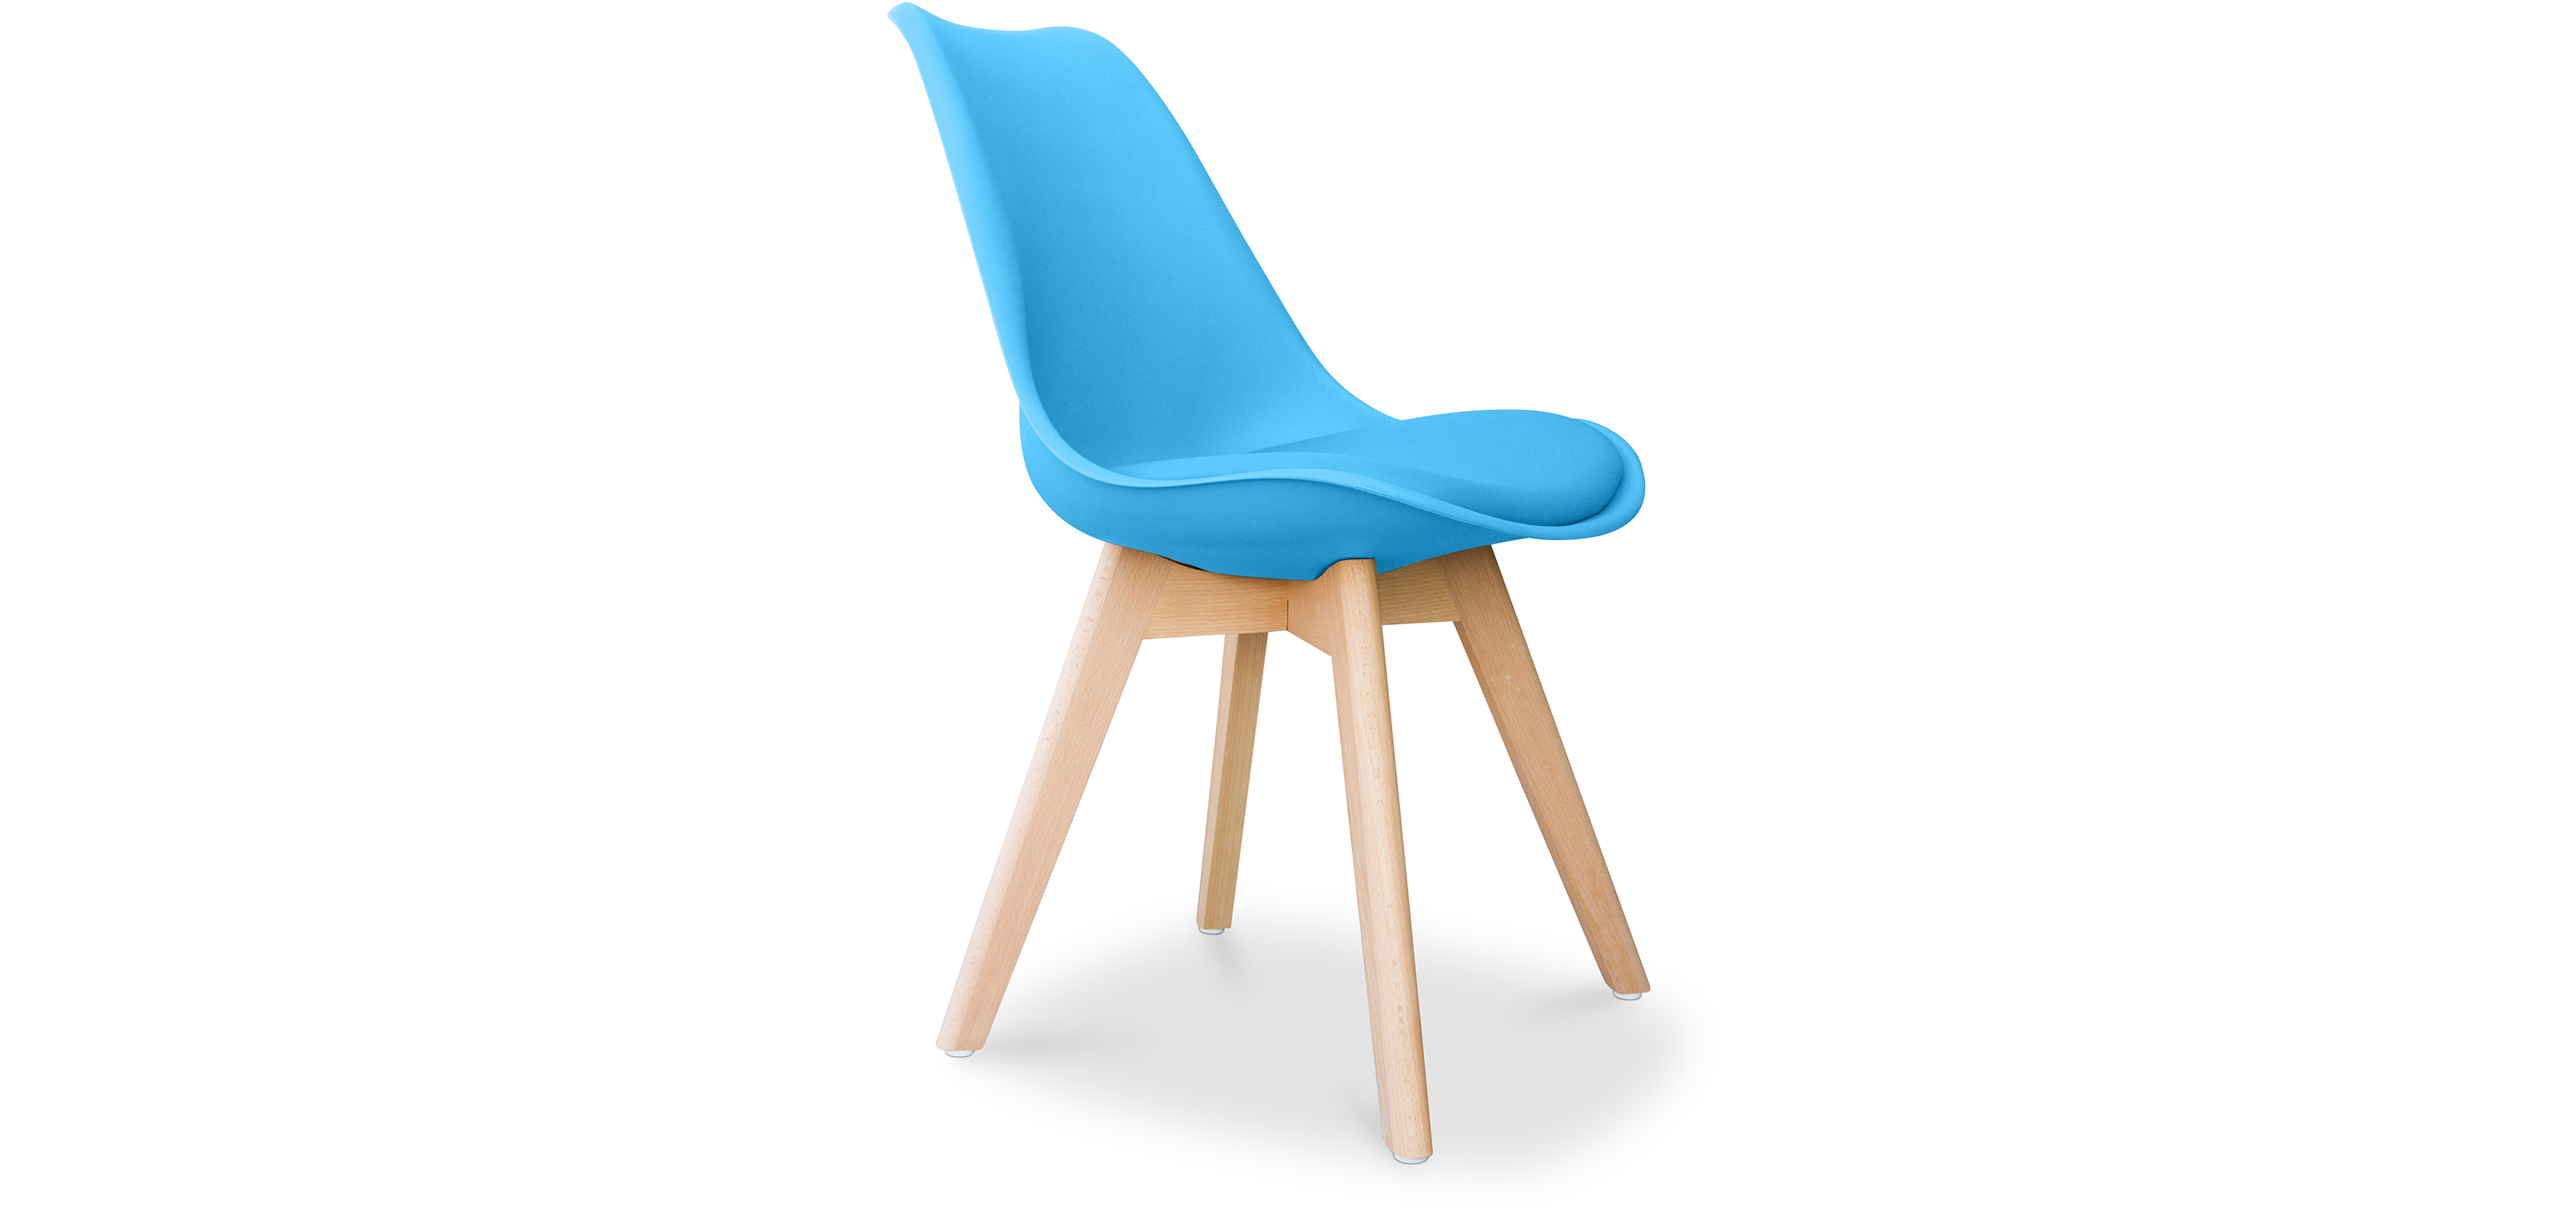 Chaises Scandinaves Dsw Chaise Dsw Avec Coussin Design Scandinave Charles Eames